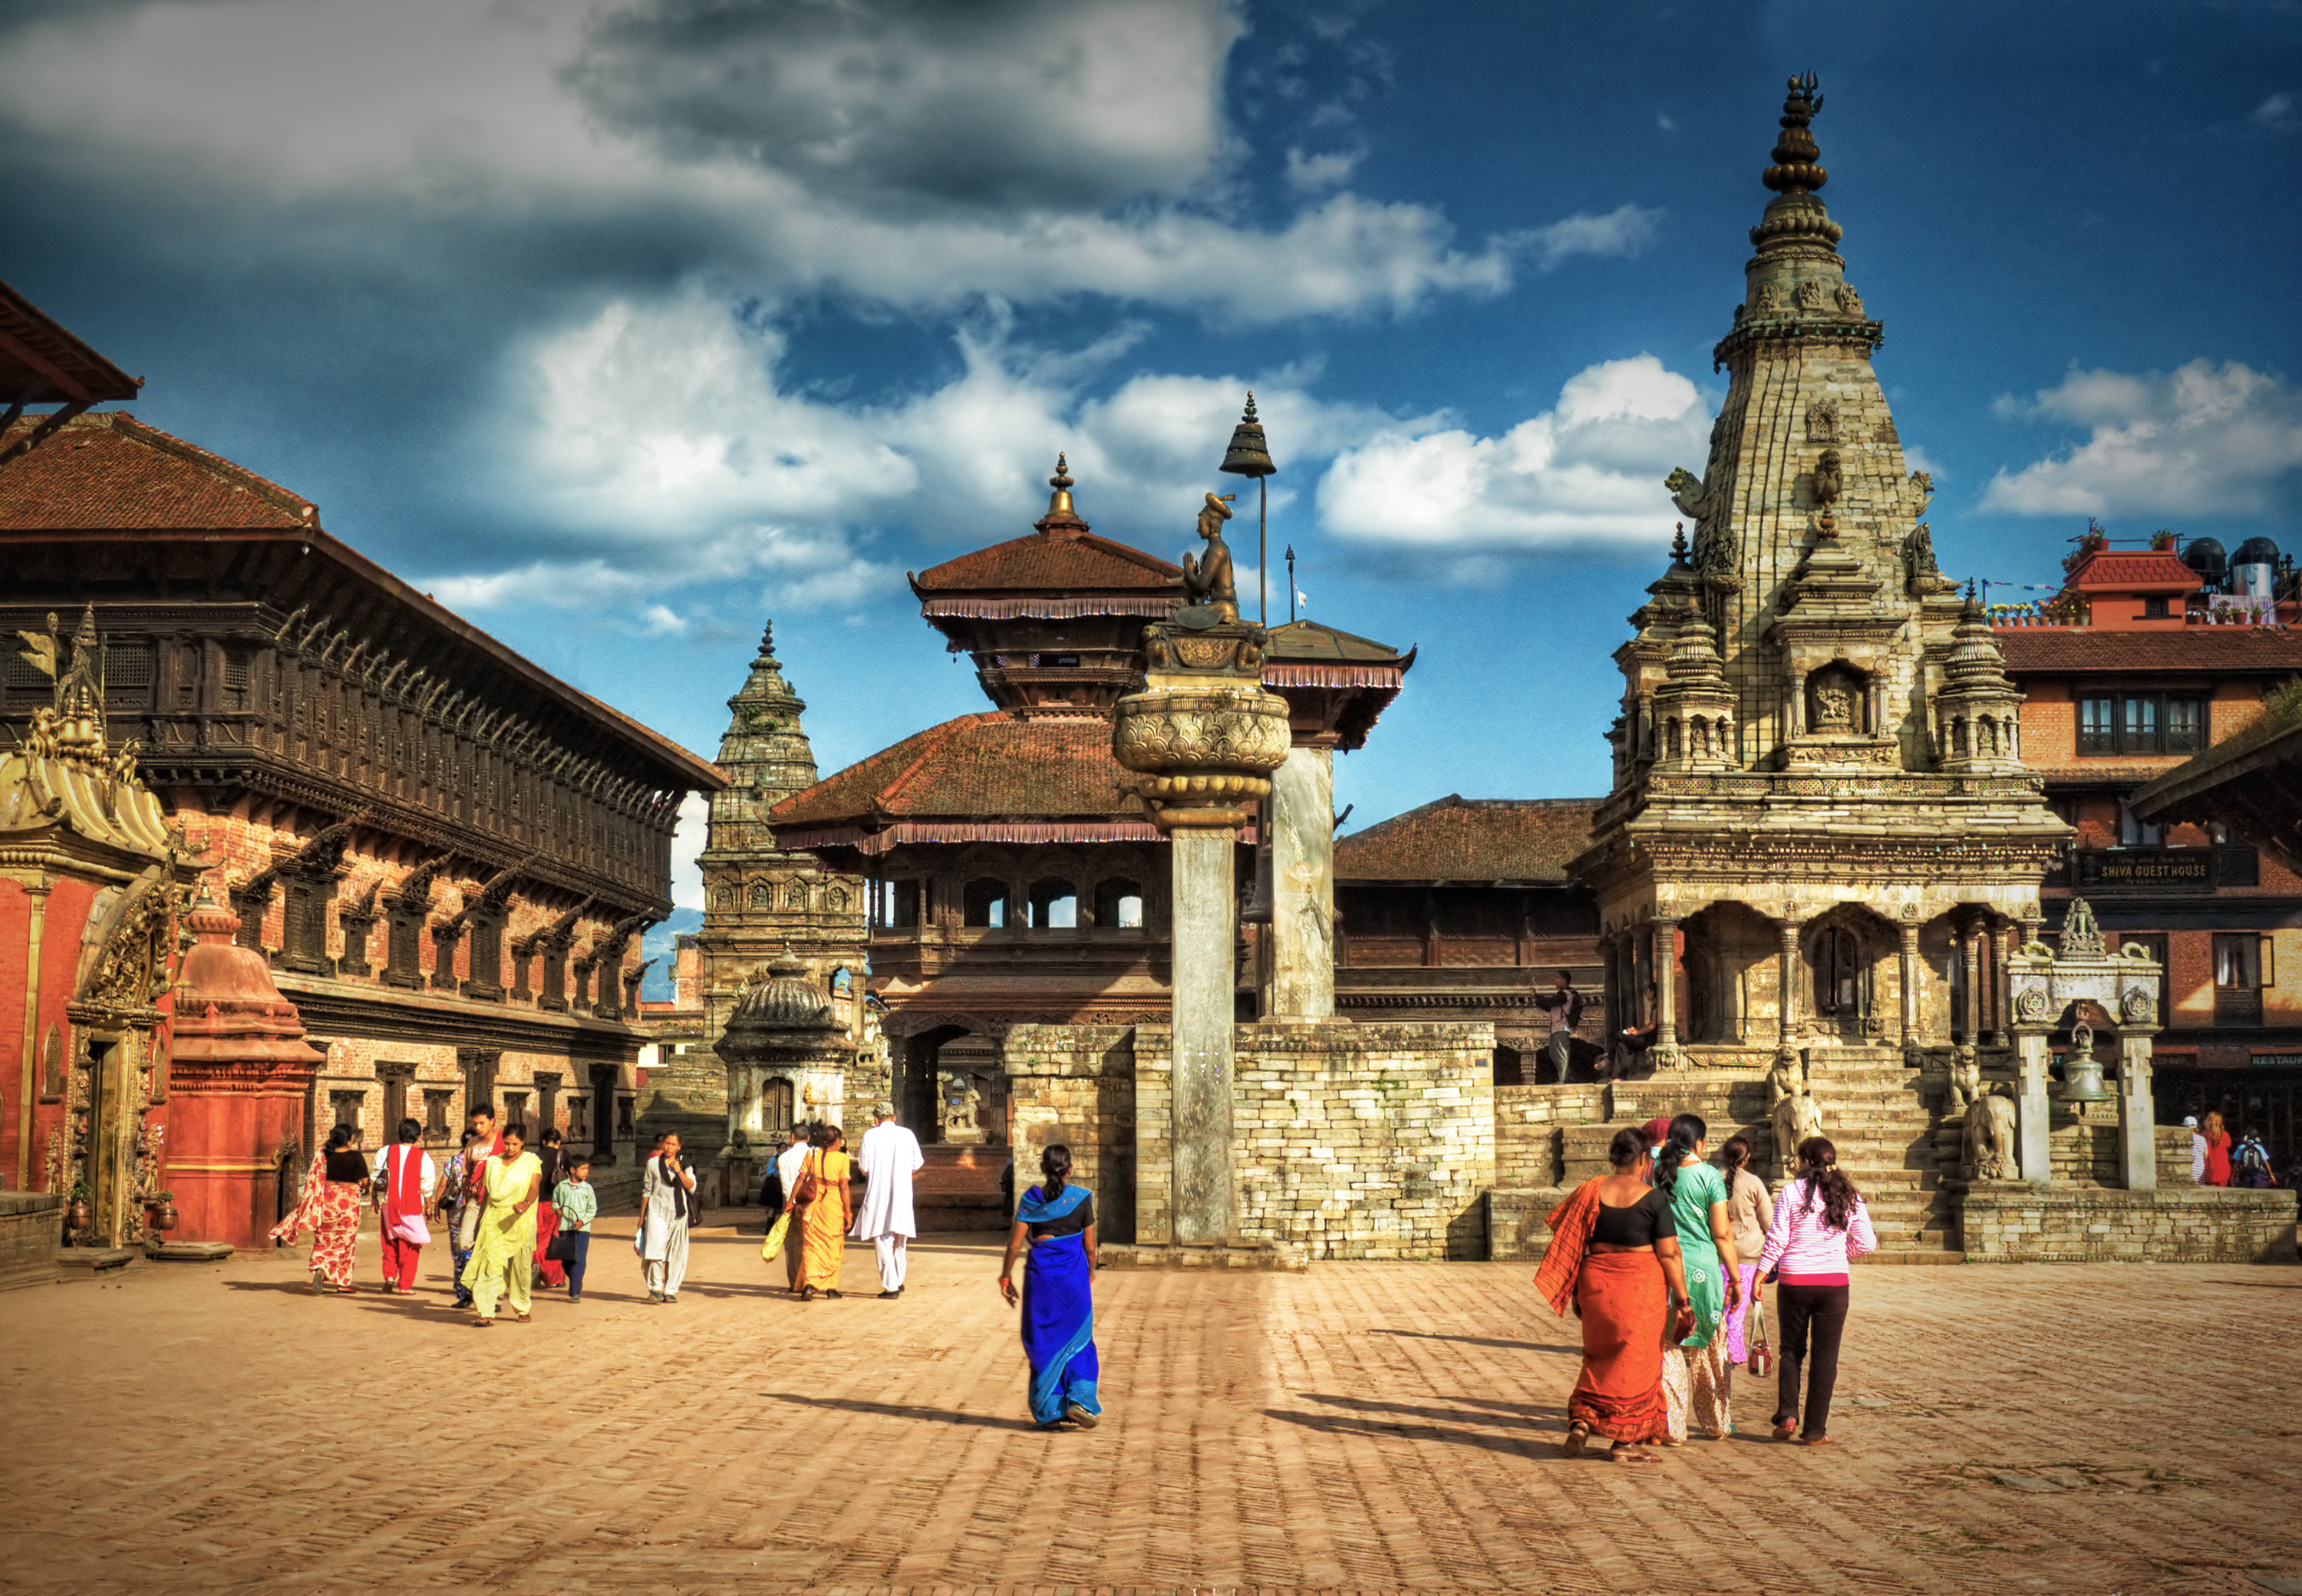 temple square bhaktapur nepal author bloy bruce